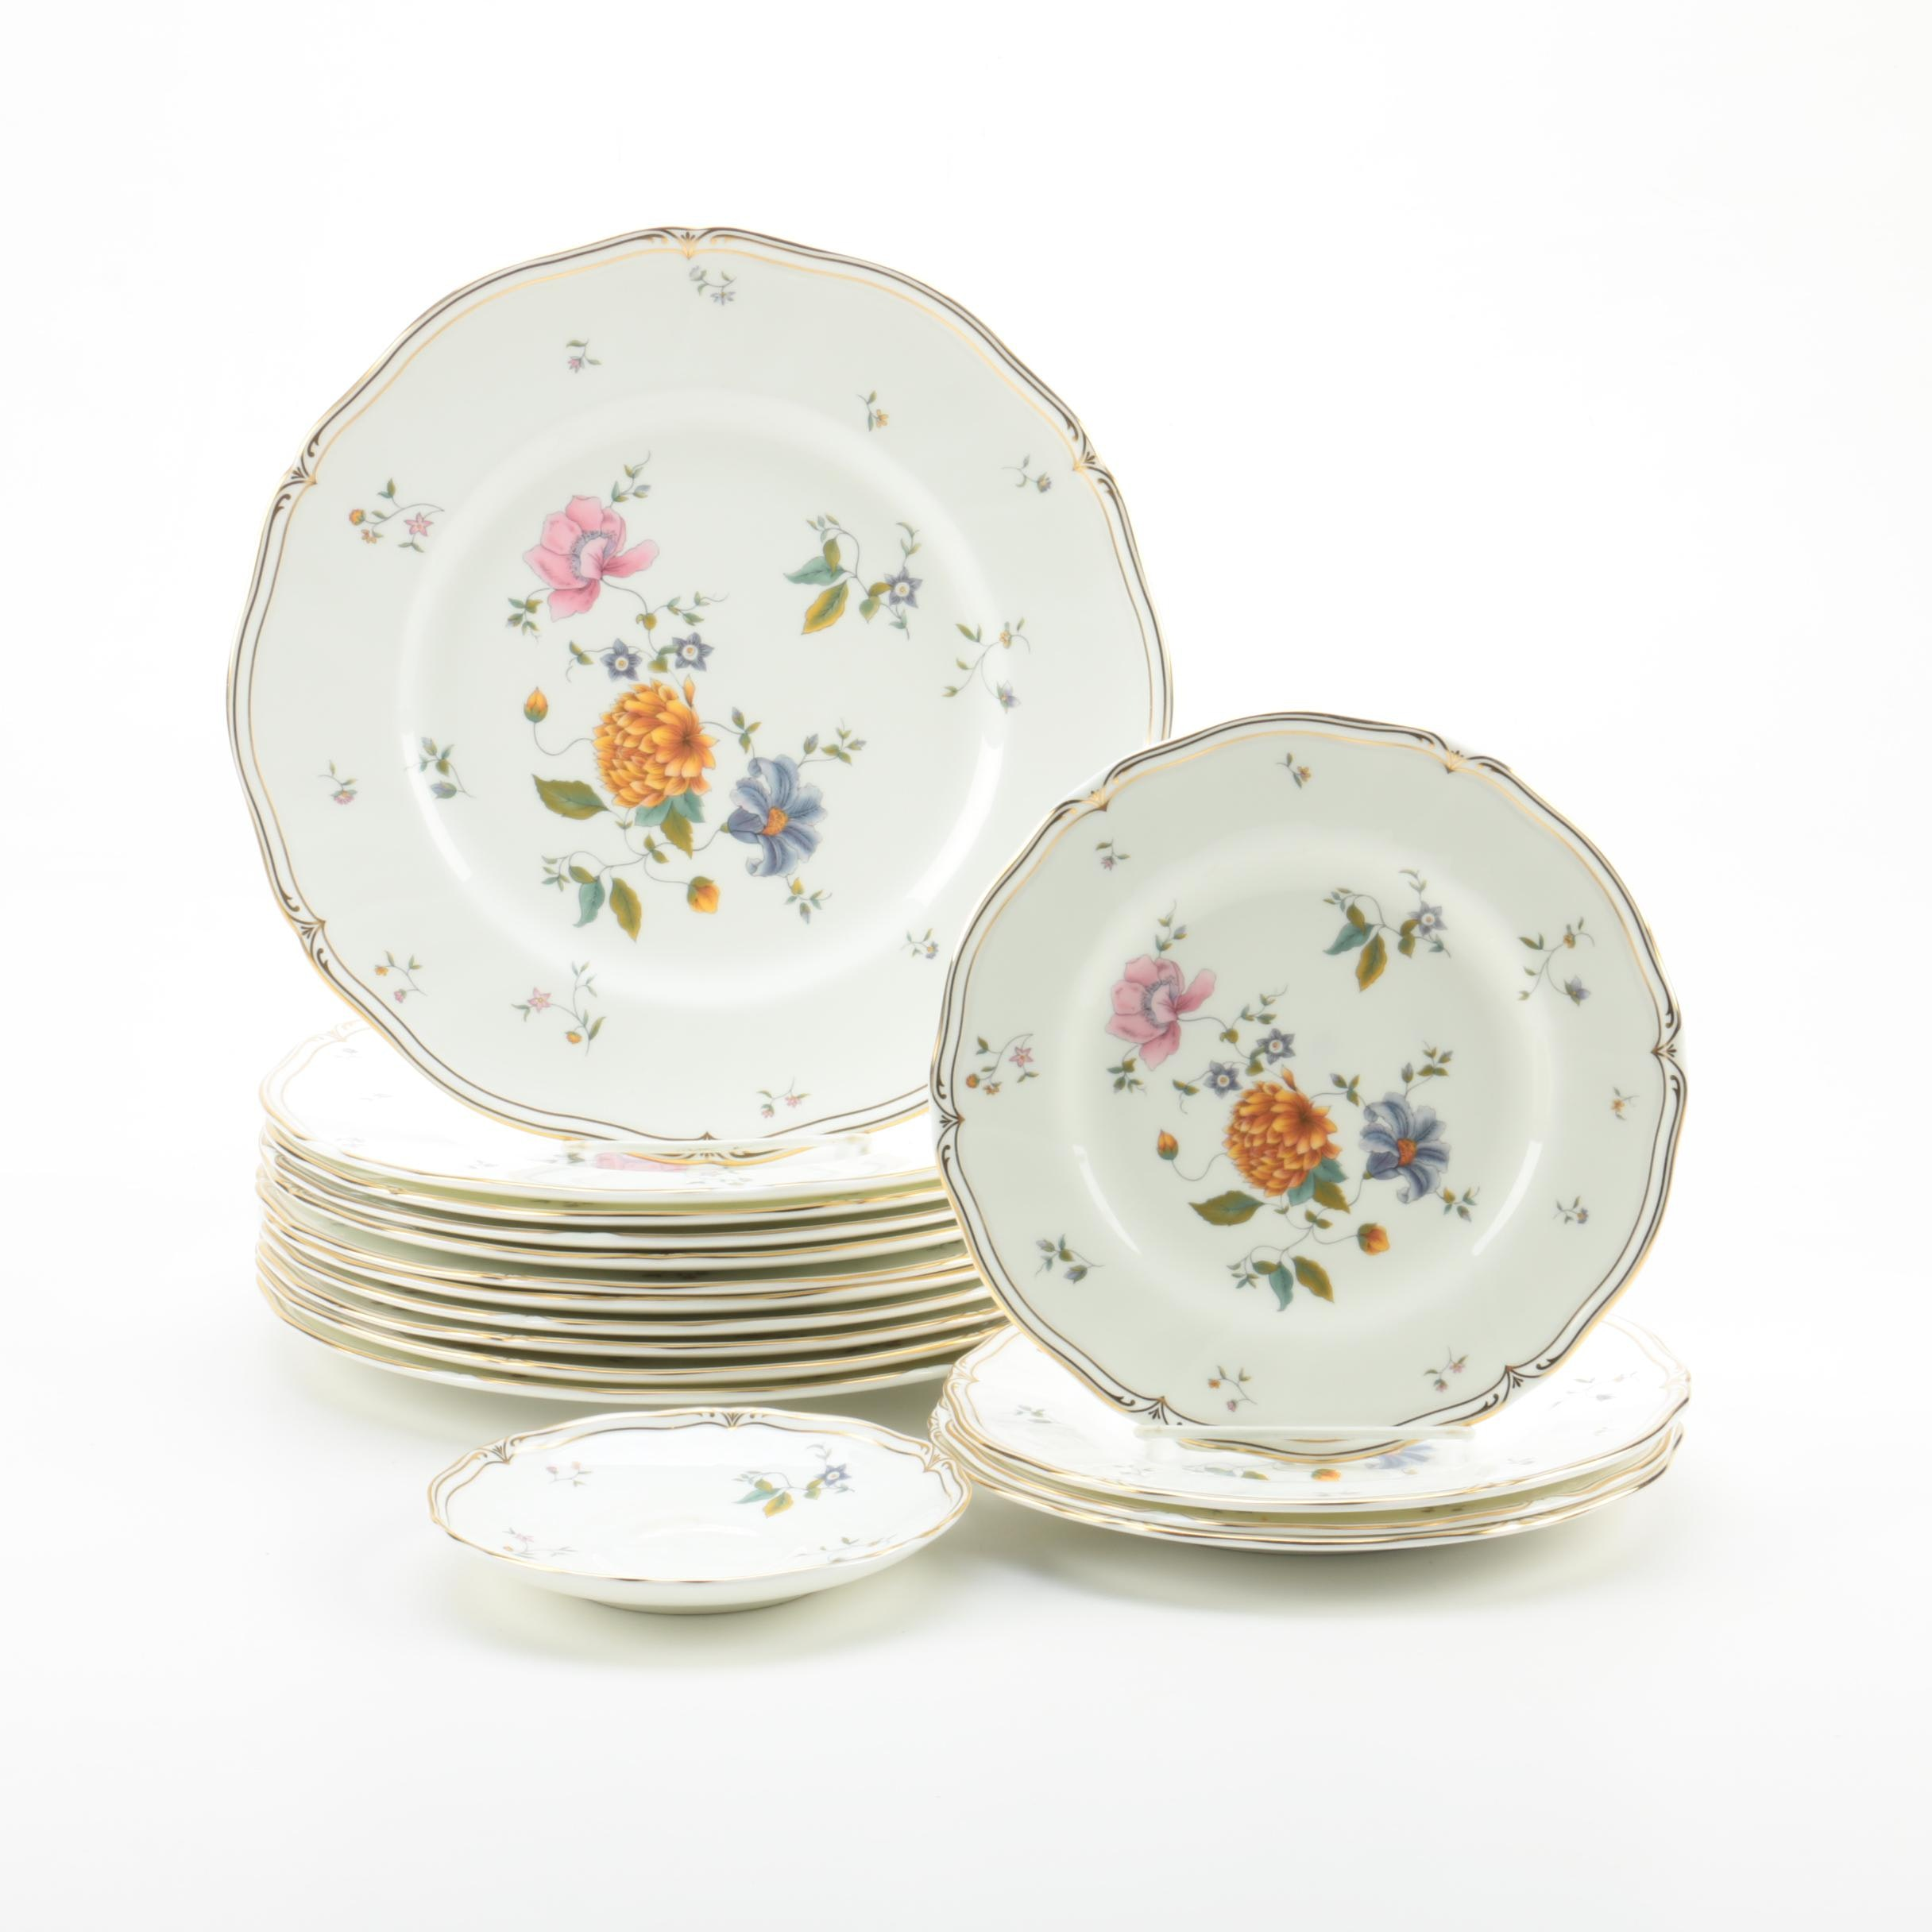 "Wedgwood ""Rosemeade"" Bone China Plates"